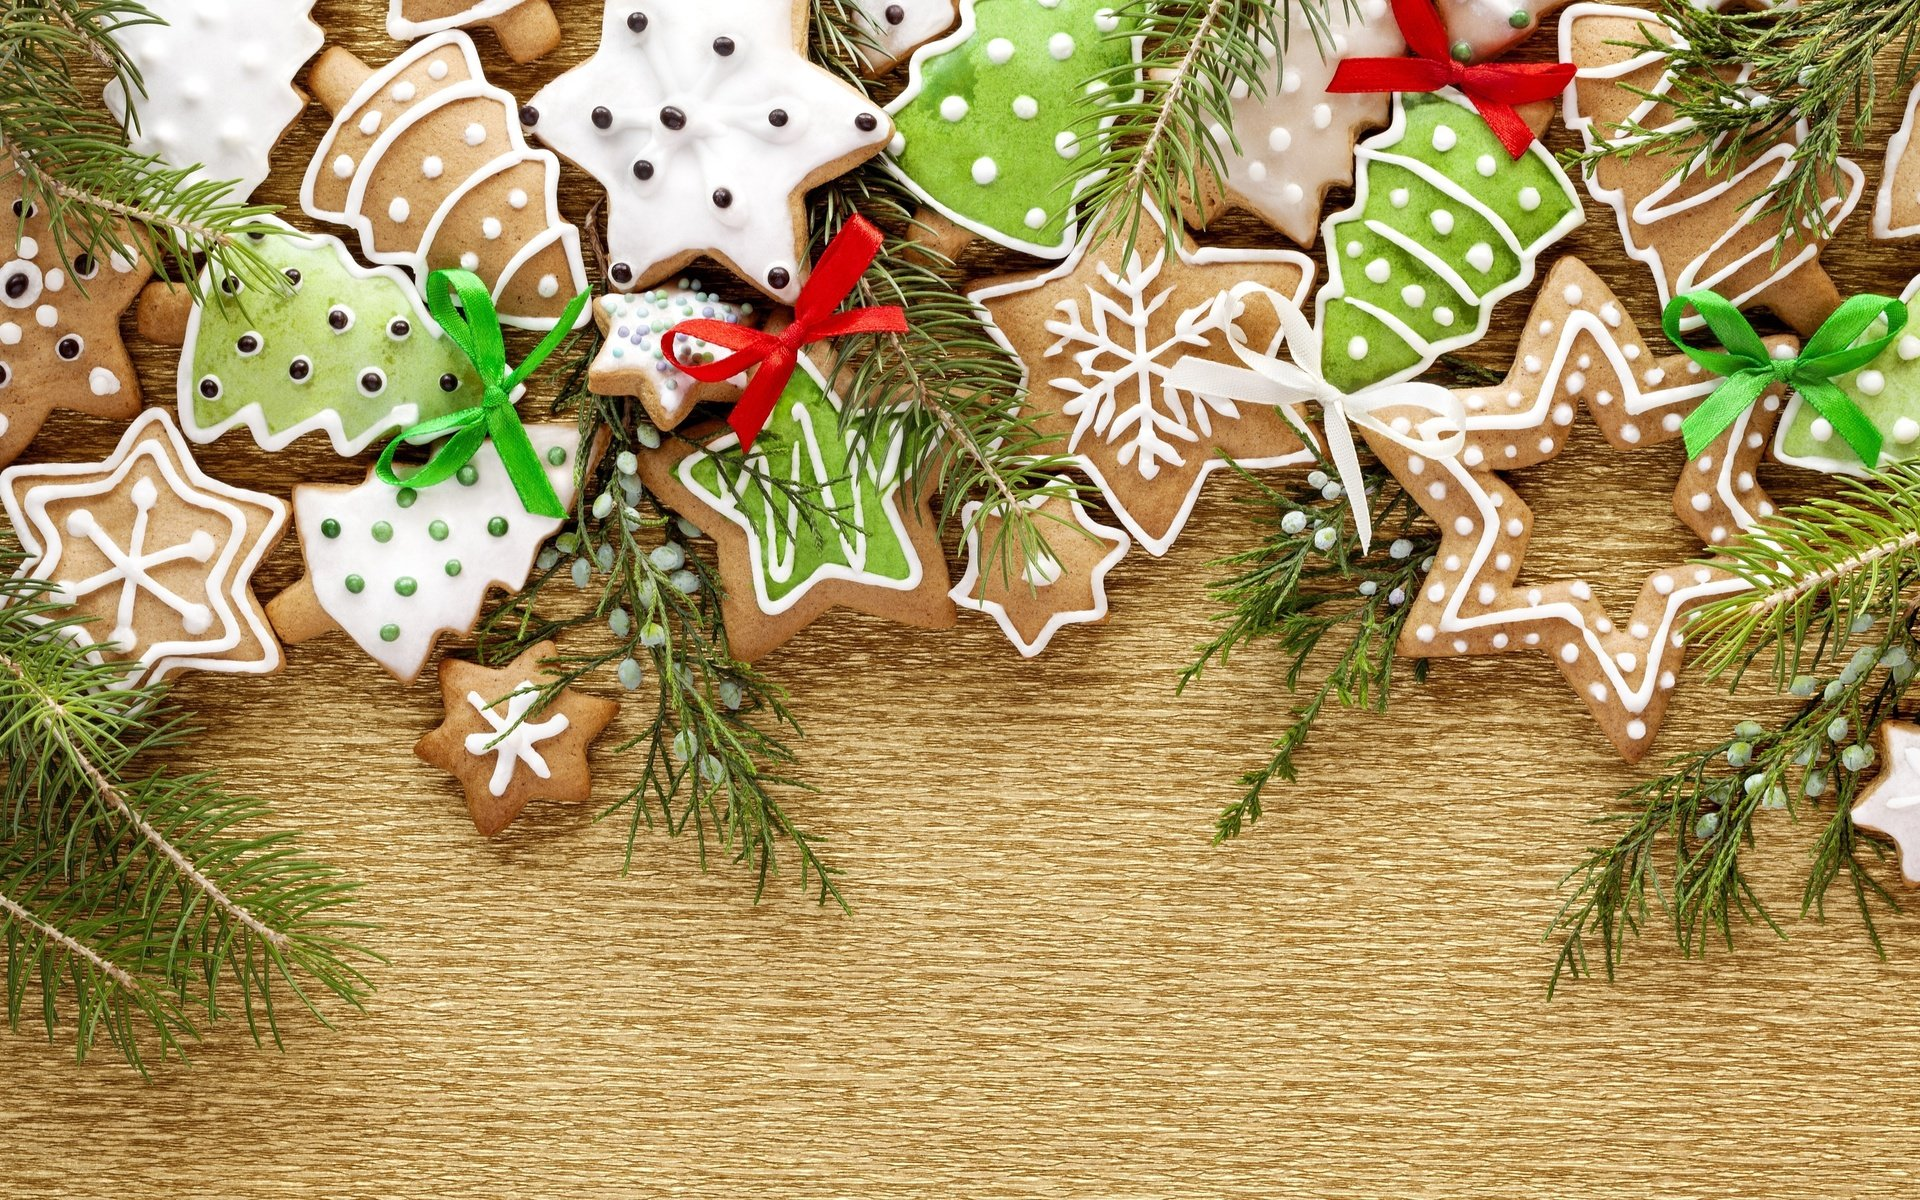 Awesome Christmas wallpaper ID435917 for hd 1920x1200 computer 1920x1200